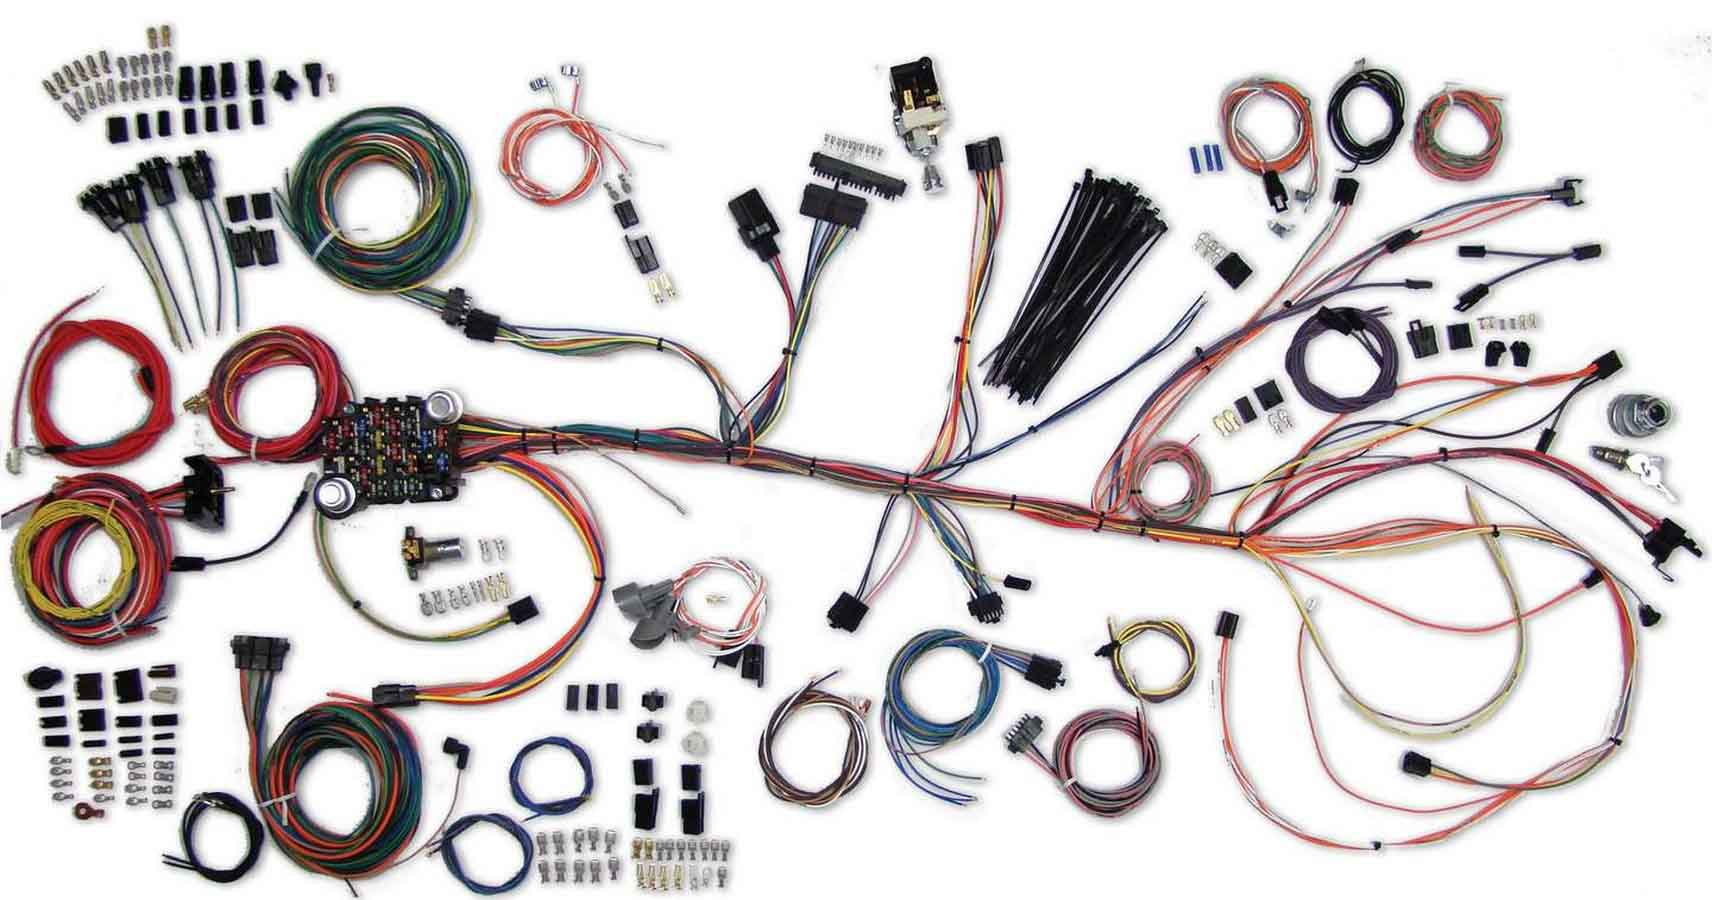 64-67 Chevelle Wire Harness System on